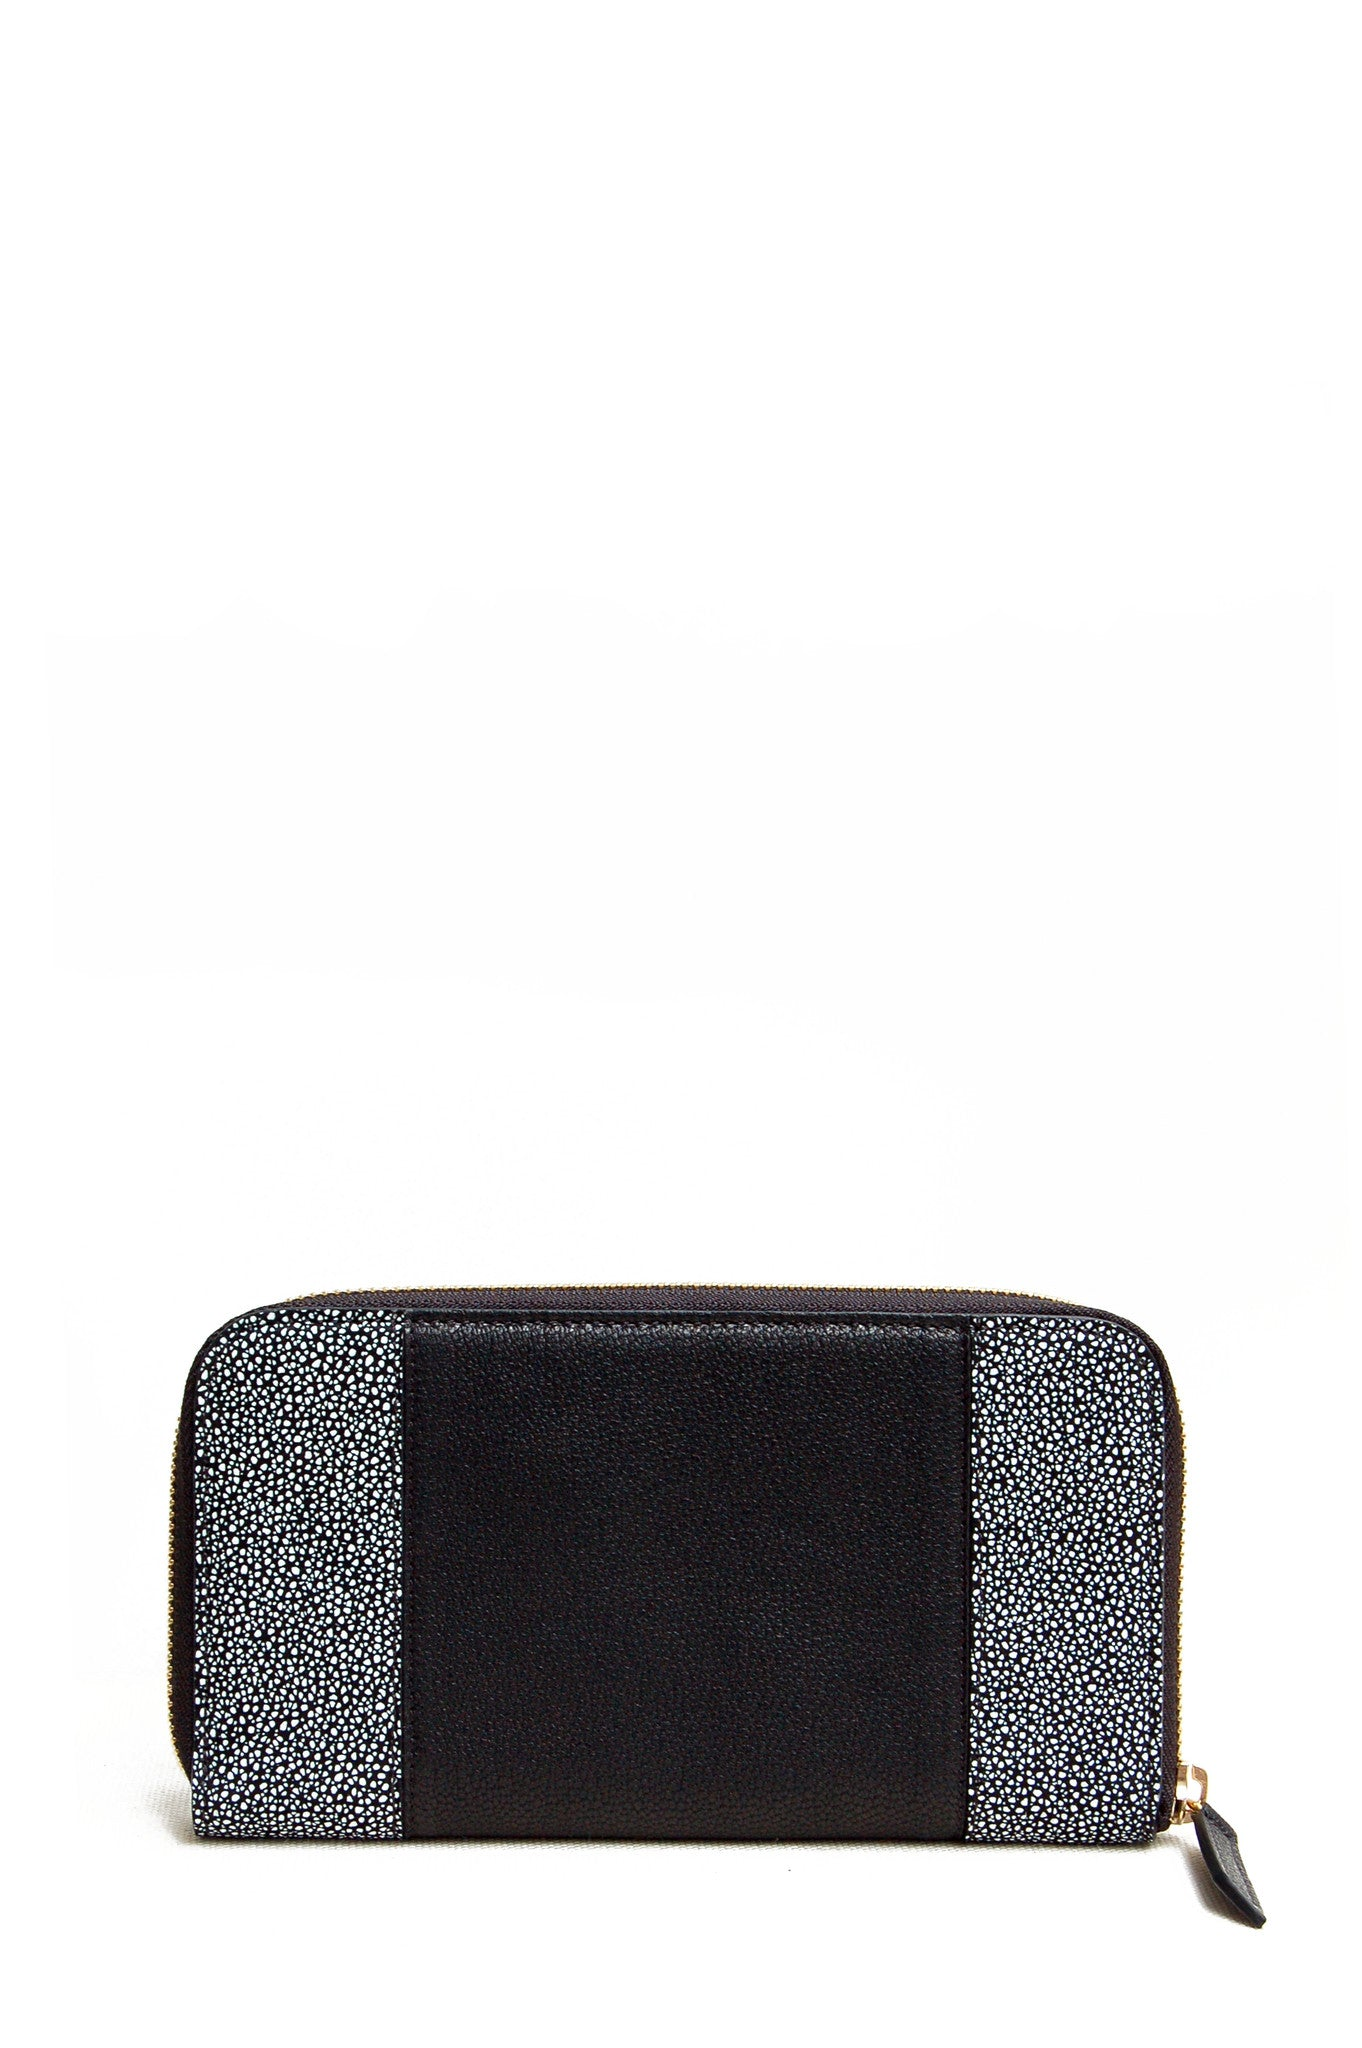 Wendee Ou: Georgie purse black & grey   Accessories > Wallets,Accessories -  Hiphunters Shop